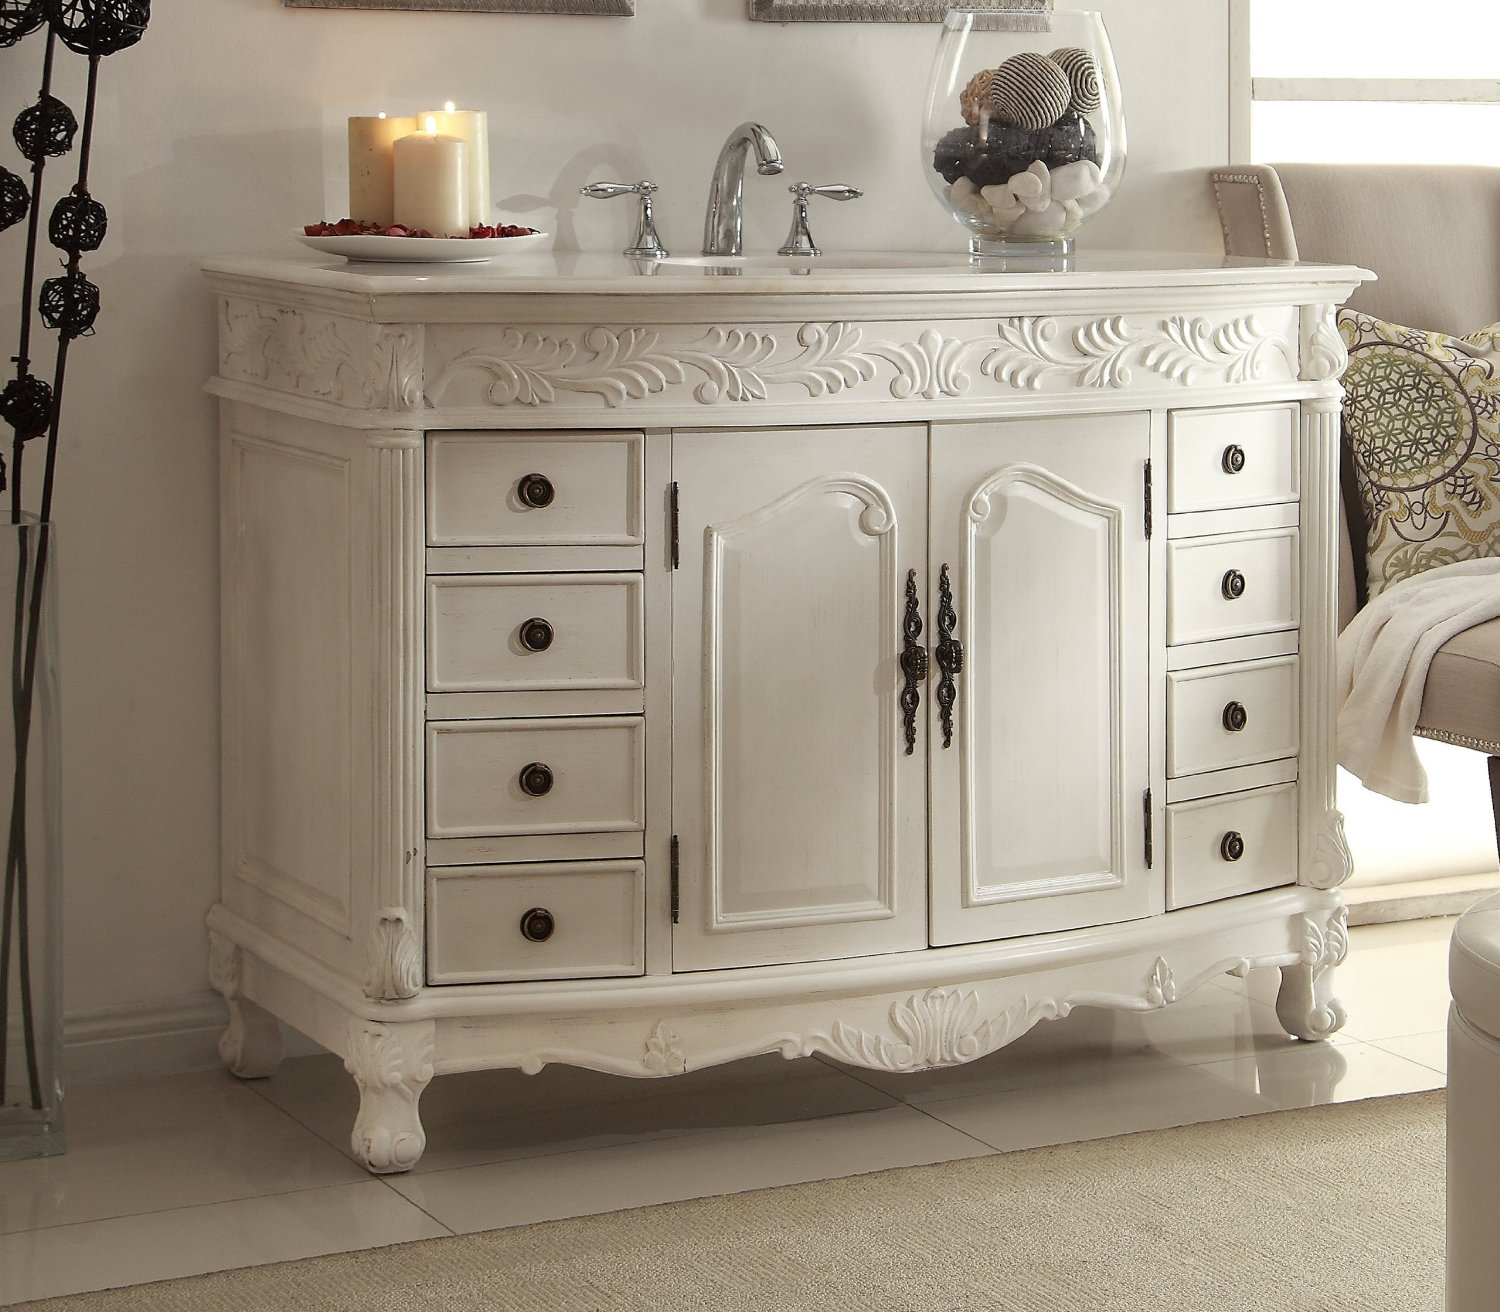 Antique White Bathroom Cabinets adelina 48 inch antique white bathroom vanity white marble top